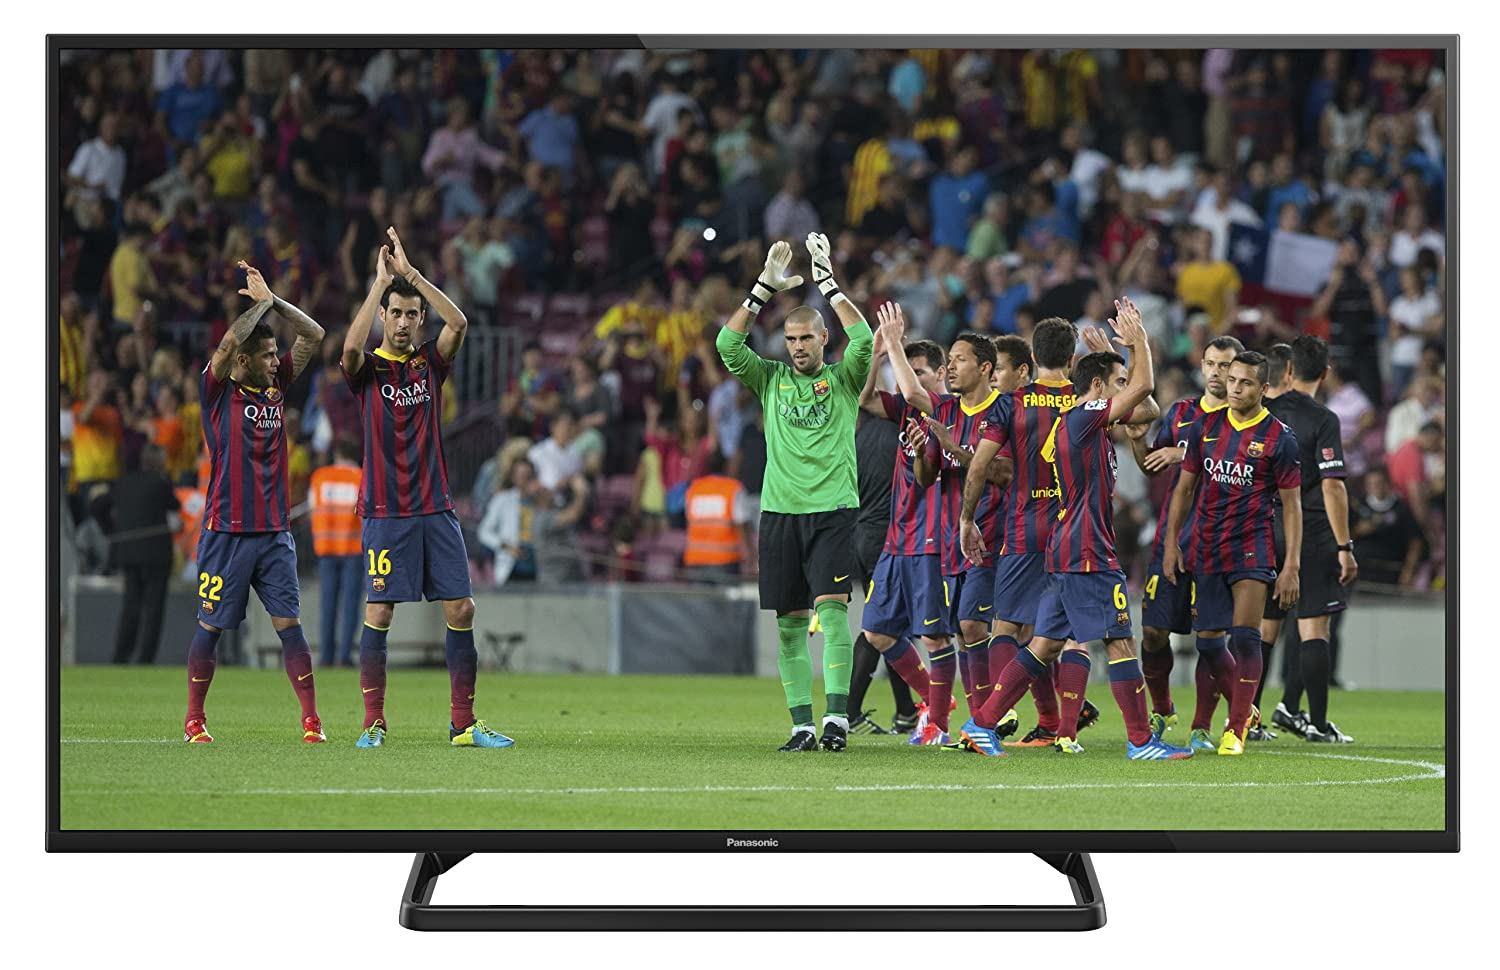 Panasonic TX-42A400B 42-inch LED TV (discontinued by manufacturer)